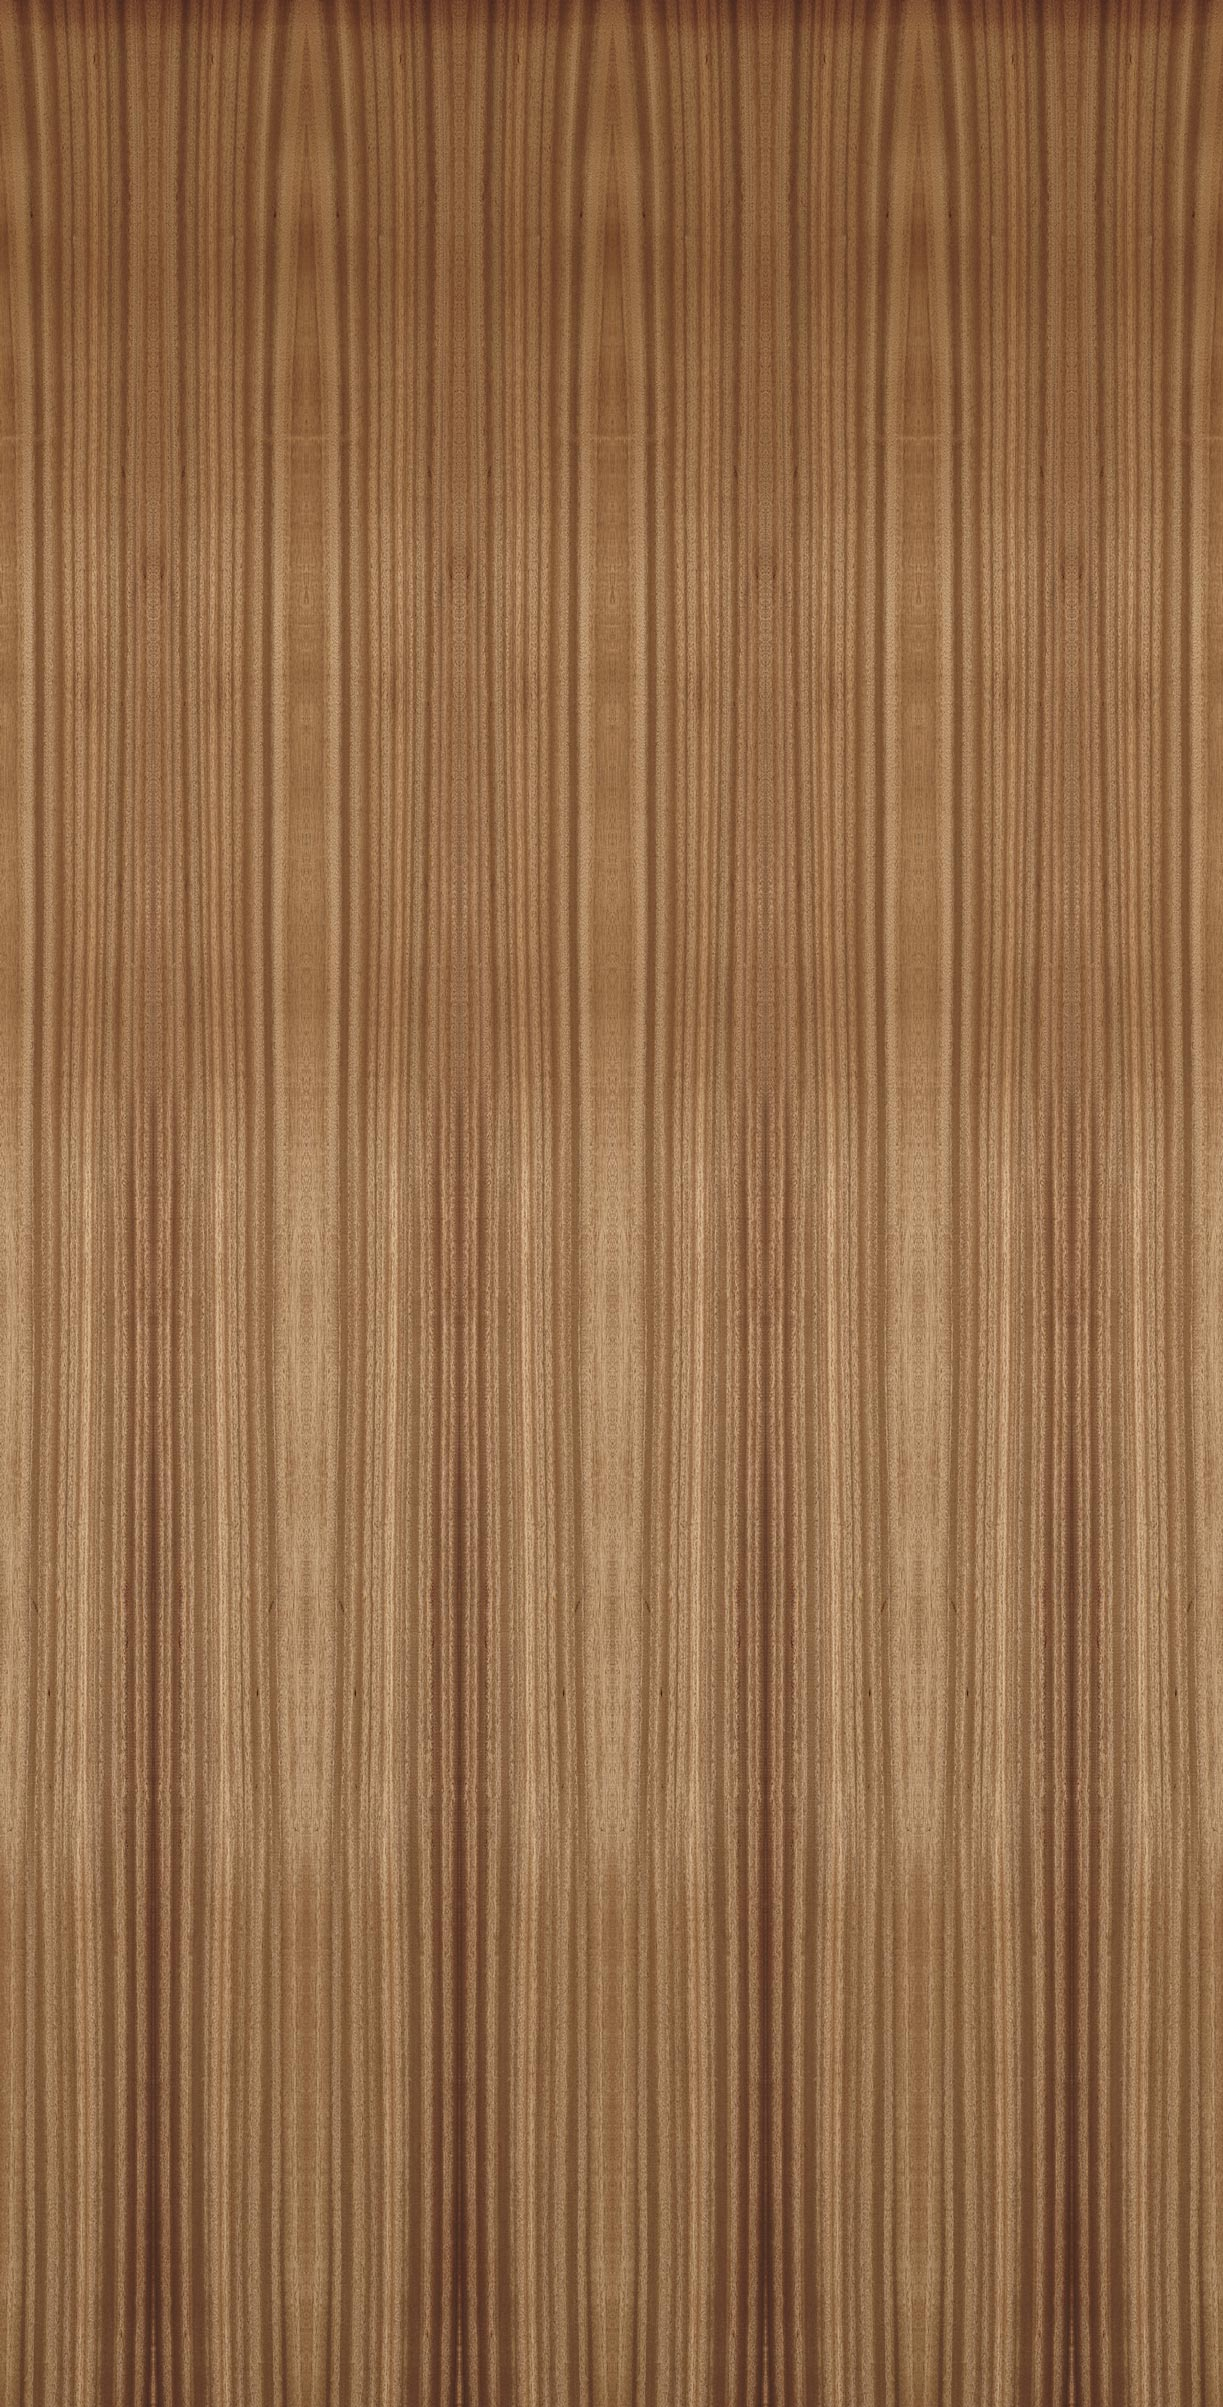 100 Brazilian Koa Tigerwood | Furniture Tiger Wood Tree ...